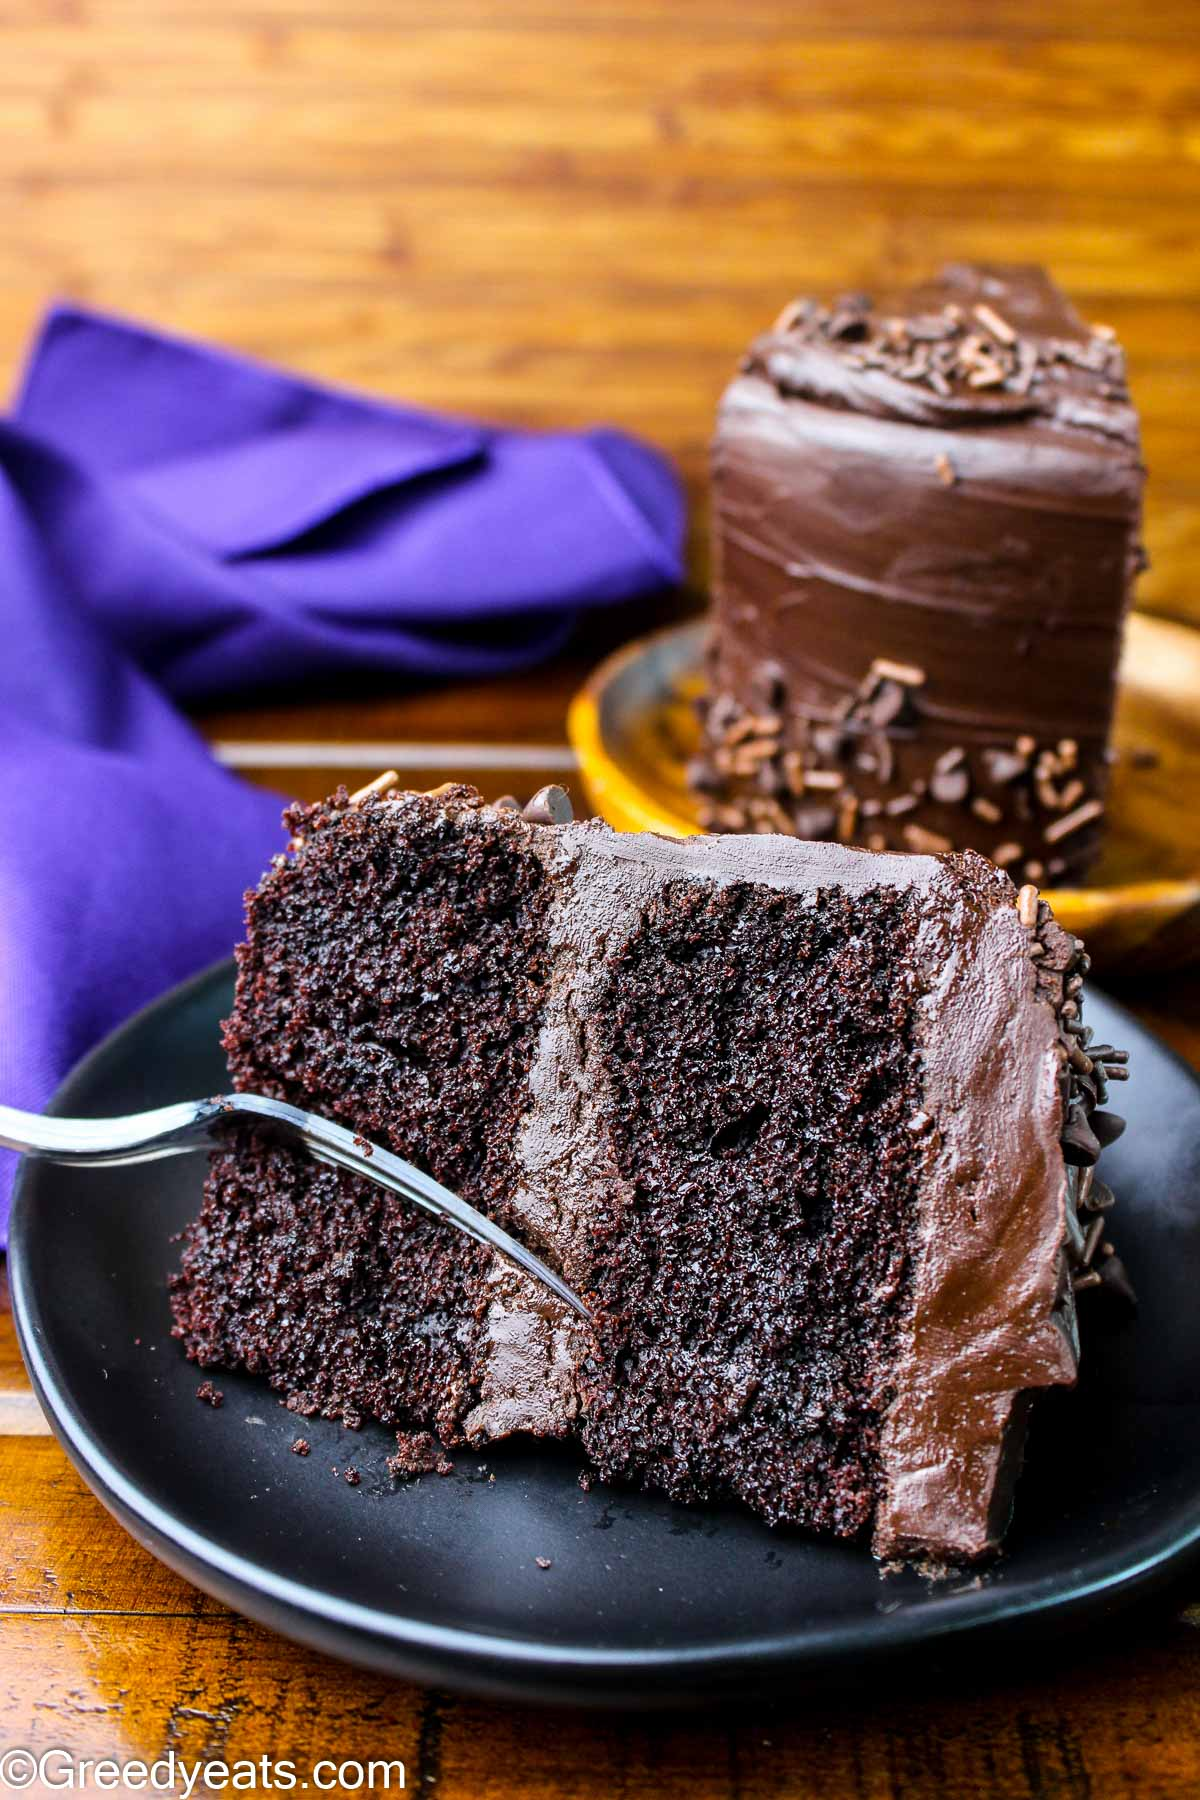 Tender and moist chocolate cake slice topped with chocolate ganache.